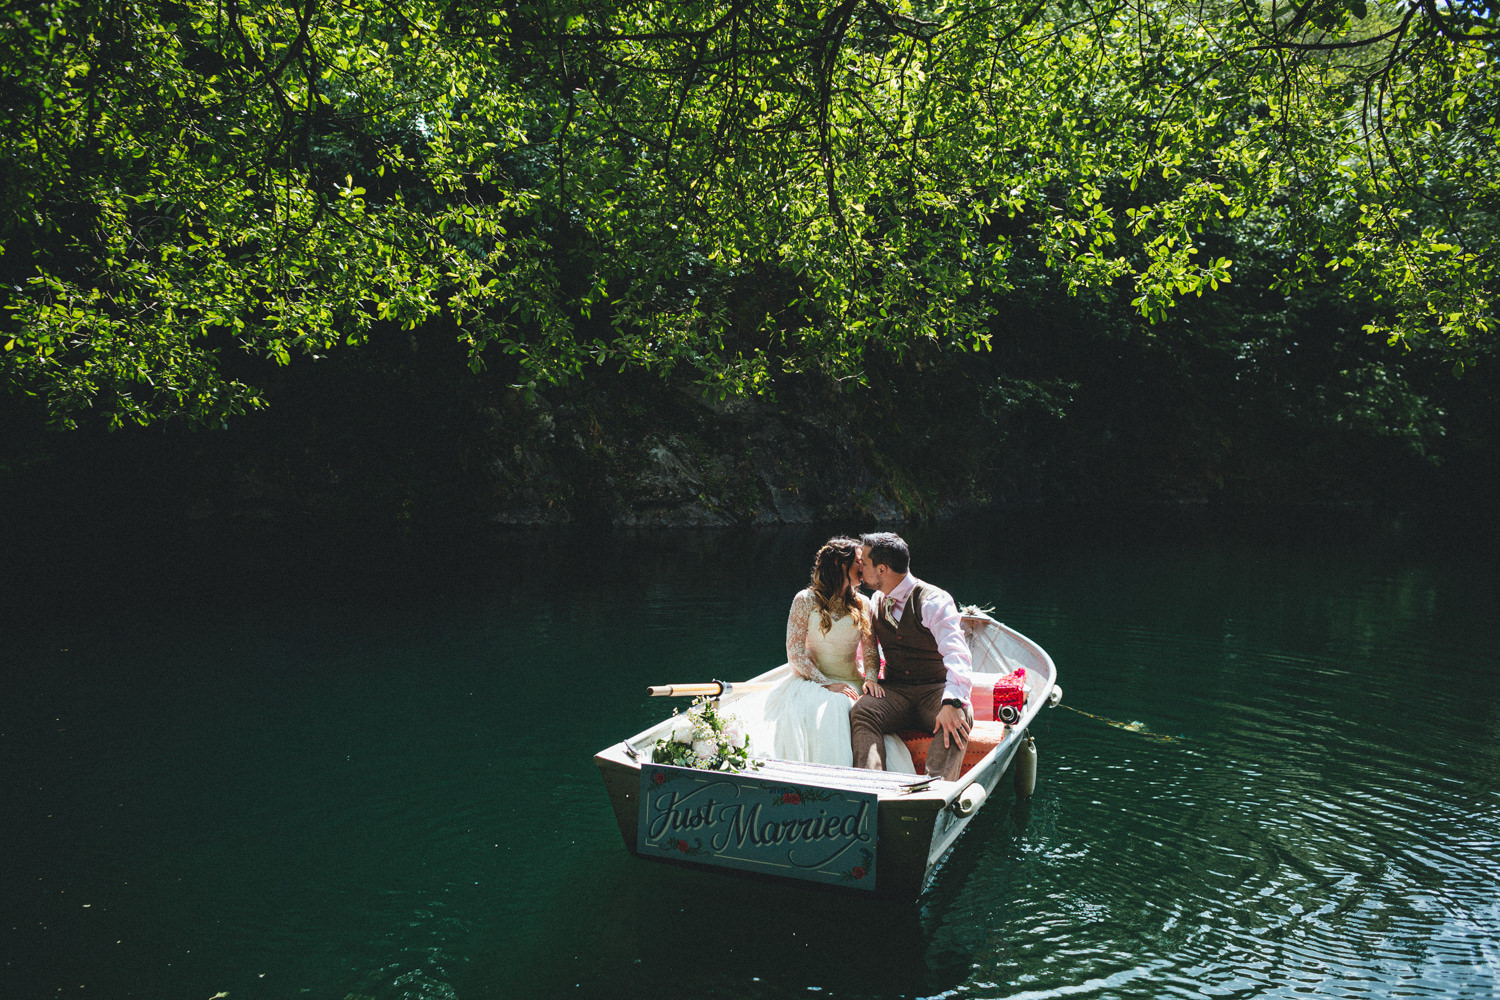 couple in a wedding boat saying just married, Cornish Tipi Wedding Photographer, Cornish Tipi Weddings, Wedding Photography at Cornish Tipi weddings, lakeside portraits